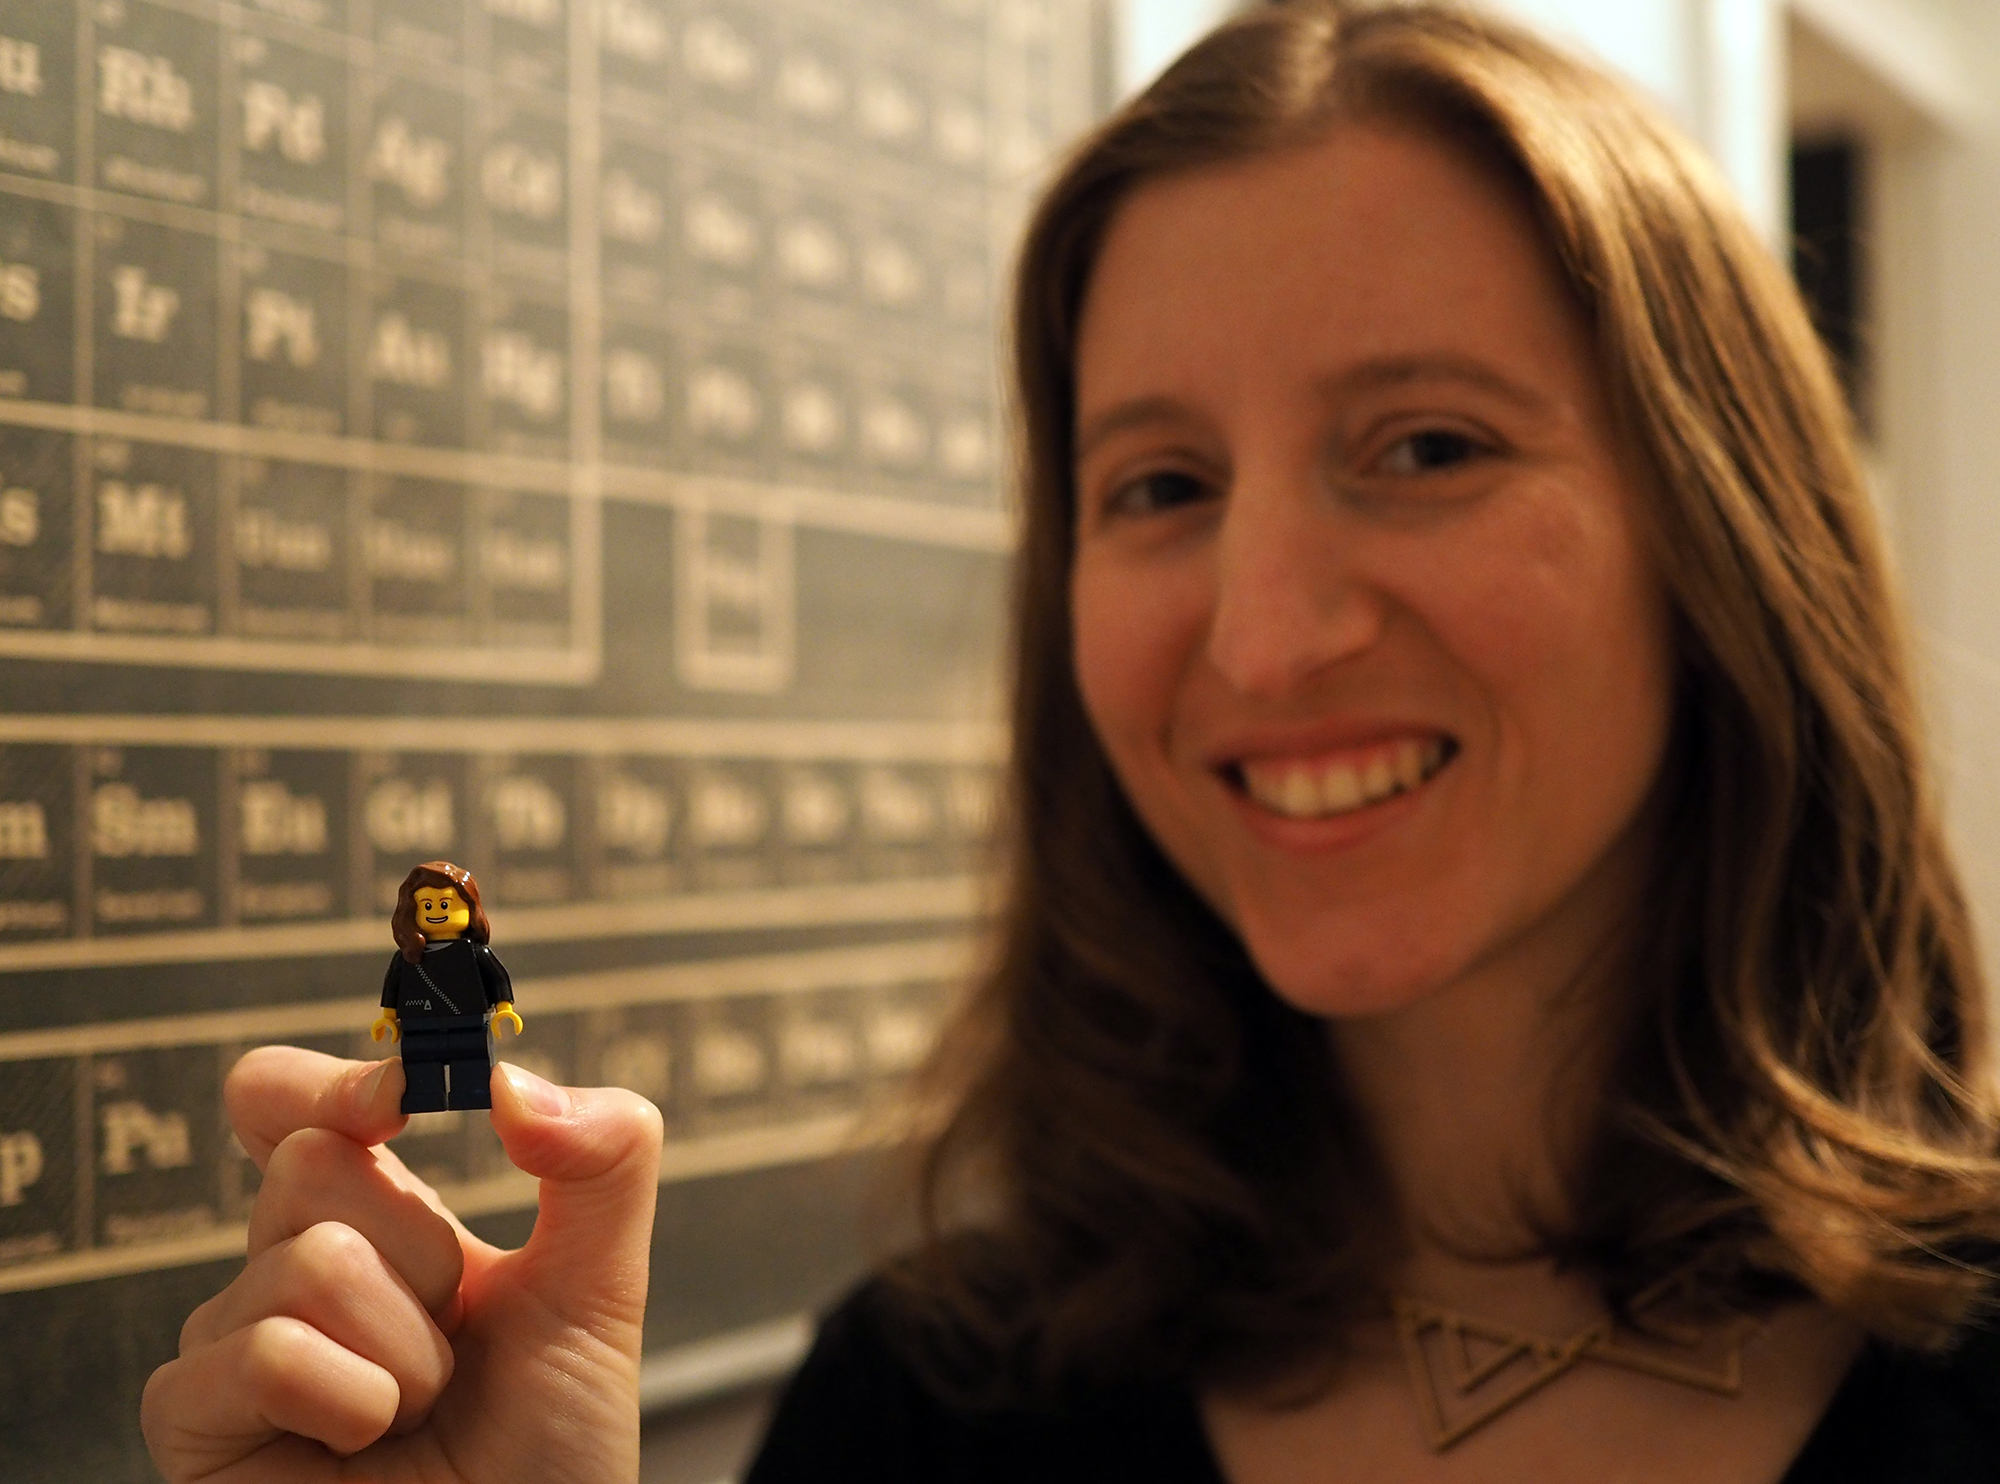 Maia Weinstock with her LEGO counterpart